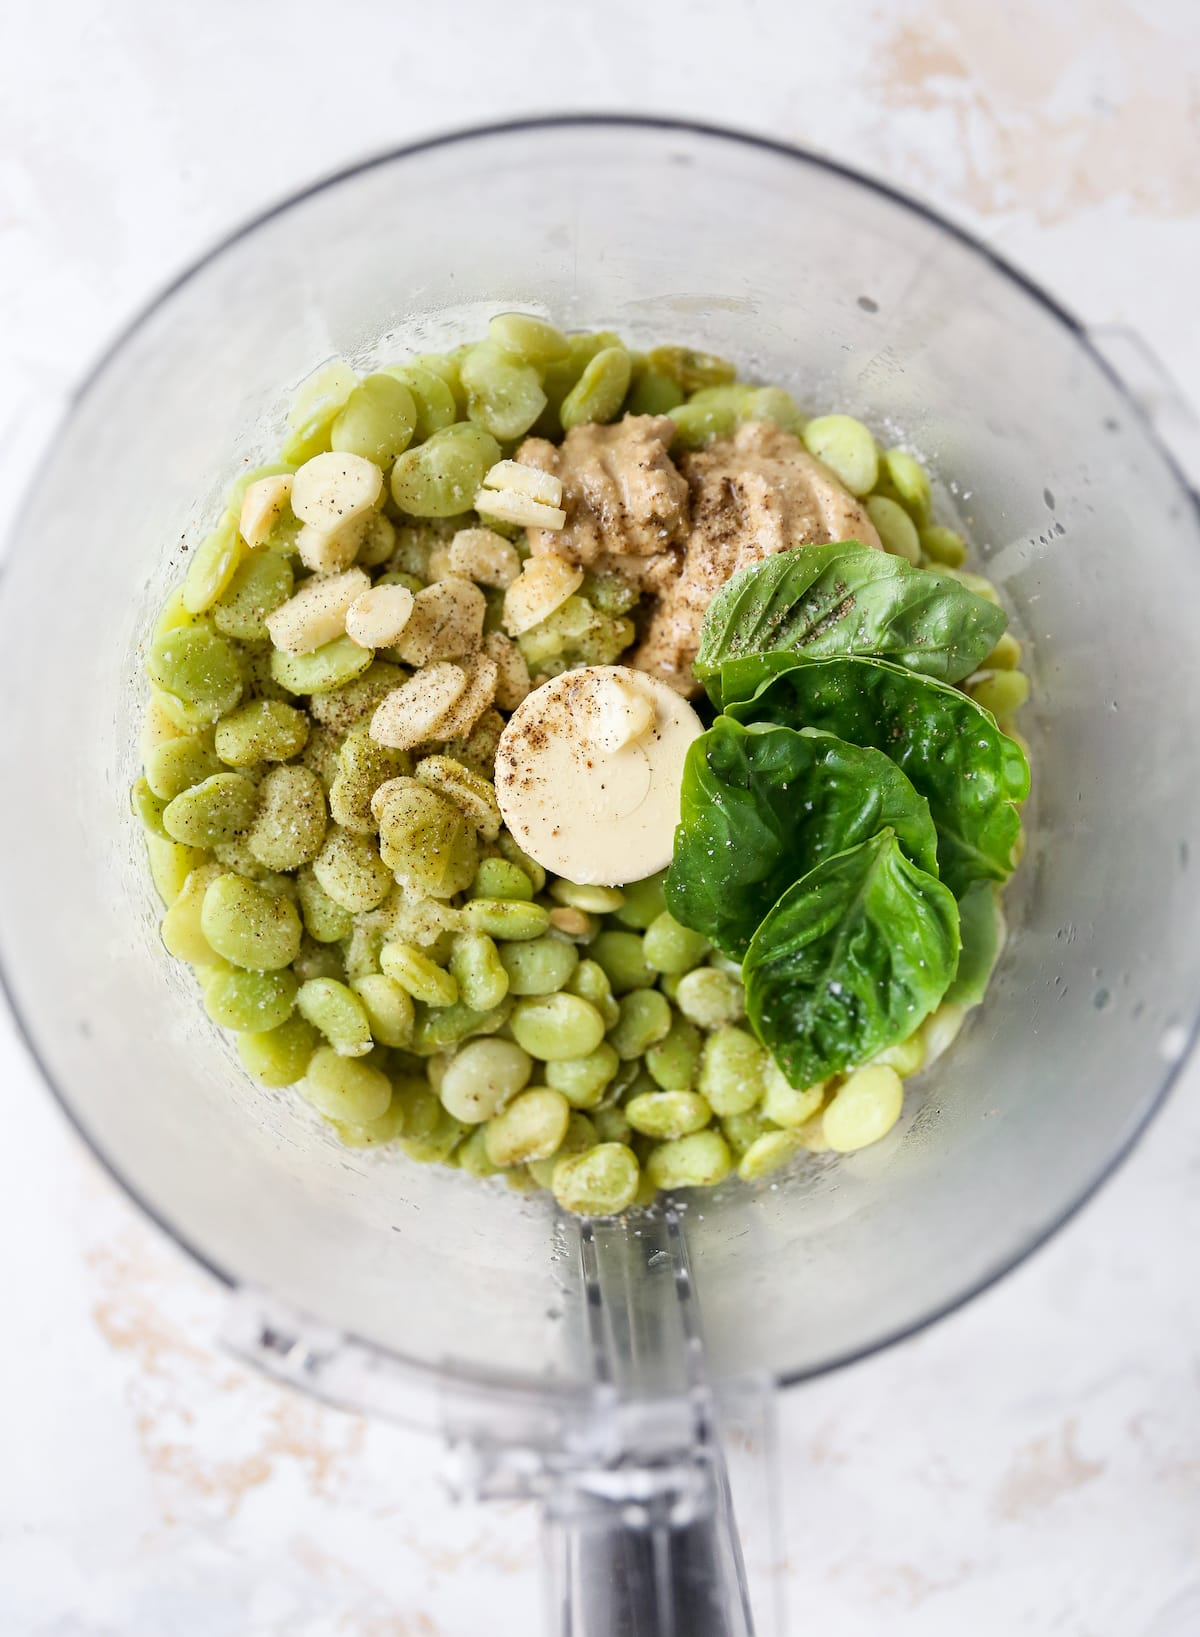 Garlic, lima beans, basil, salt and pepper in a food processor.